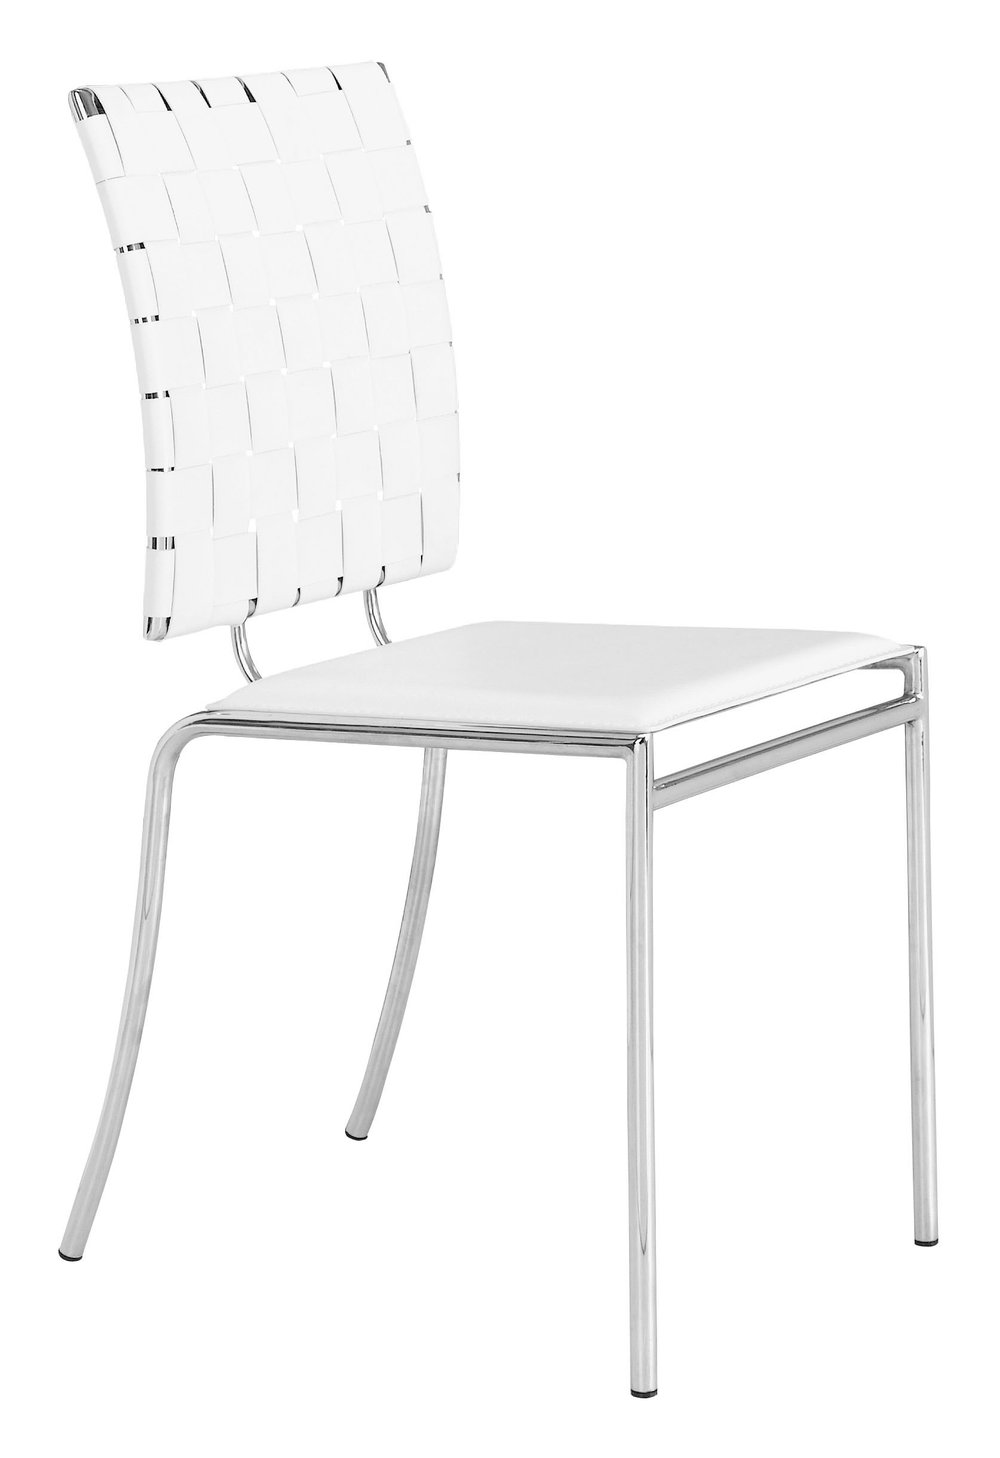 Zuo Modern Contemporary - Criss Cross Dining Chair - Set of 4 - White